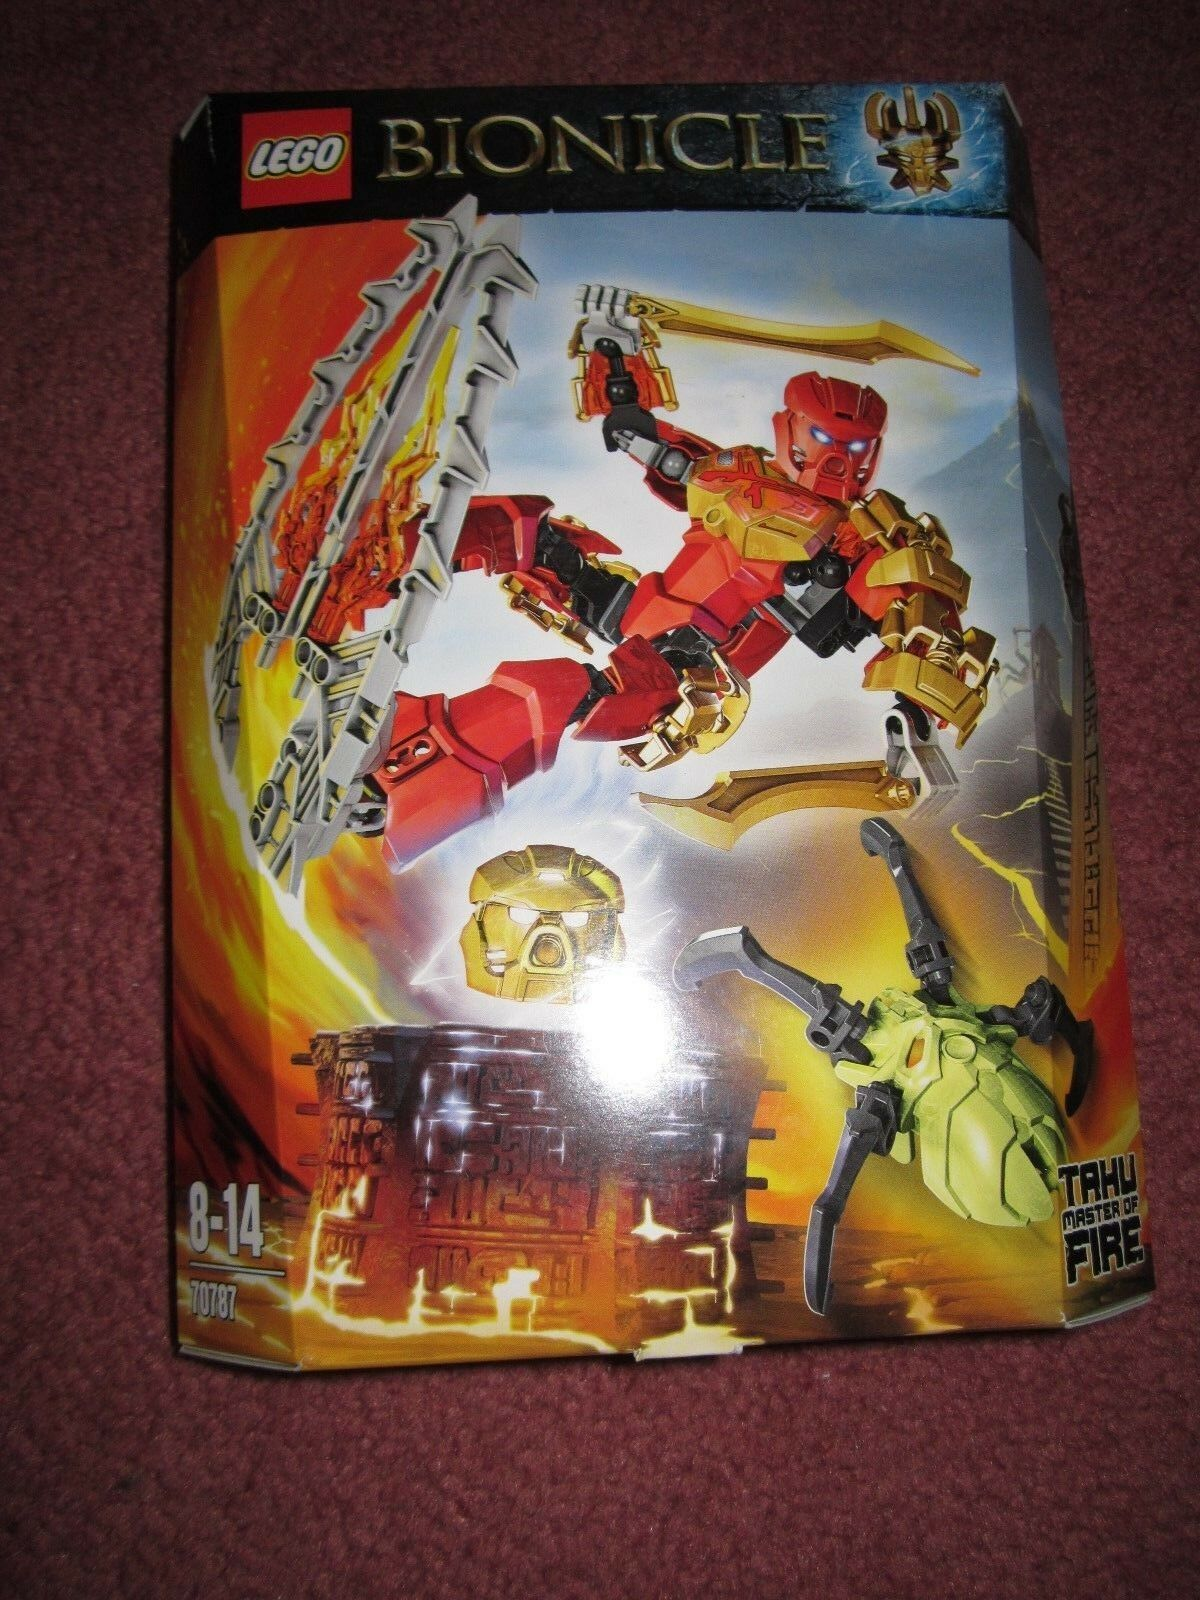 LEGO BIONICLE TAHU MASTER OF FIRE 70787 - NEW BOXED SEALED